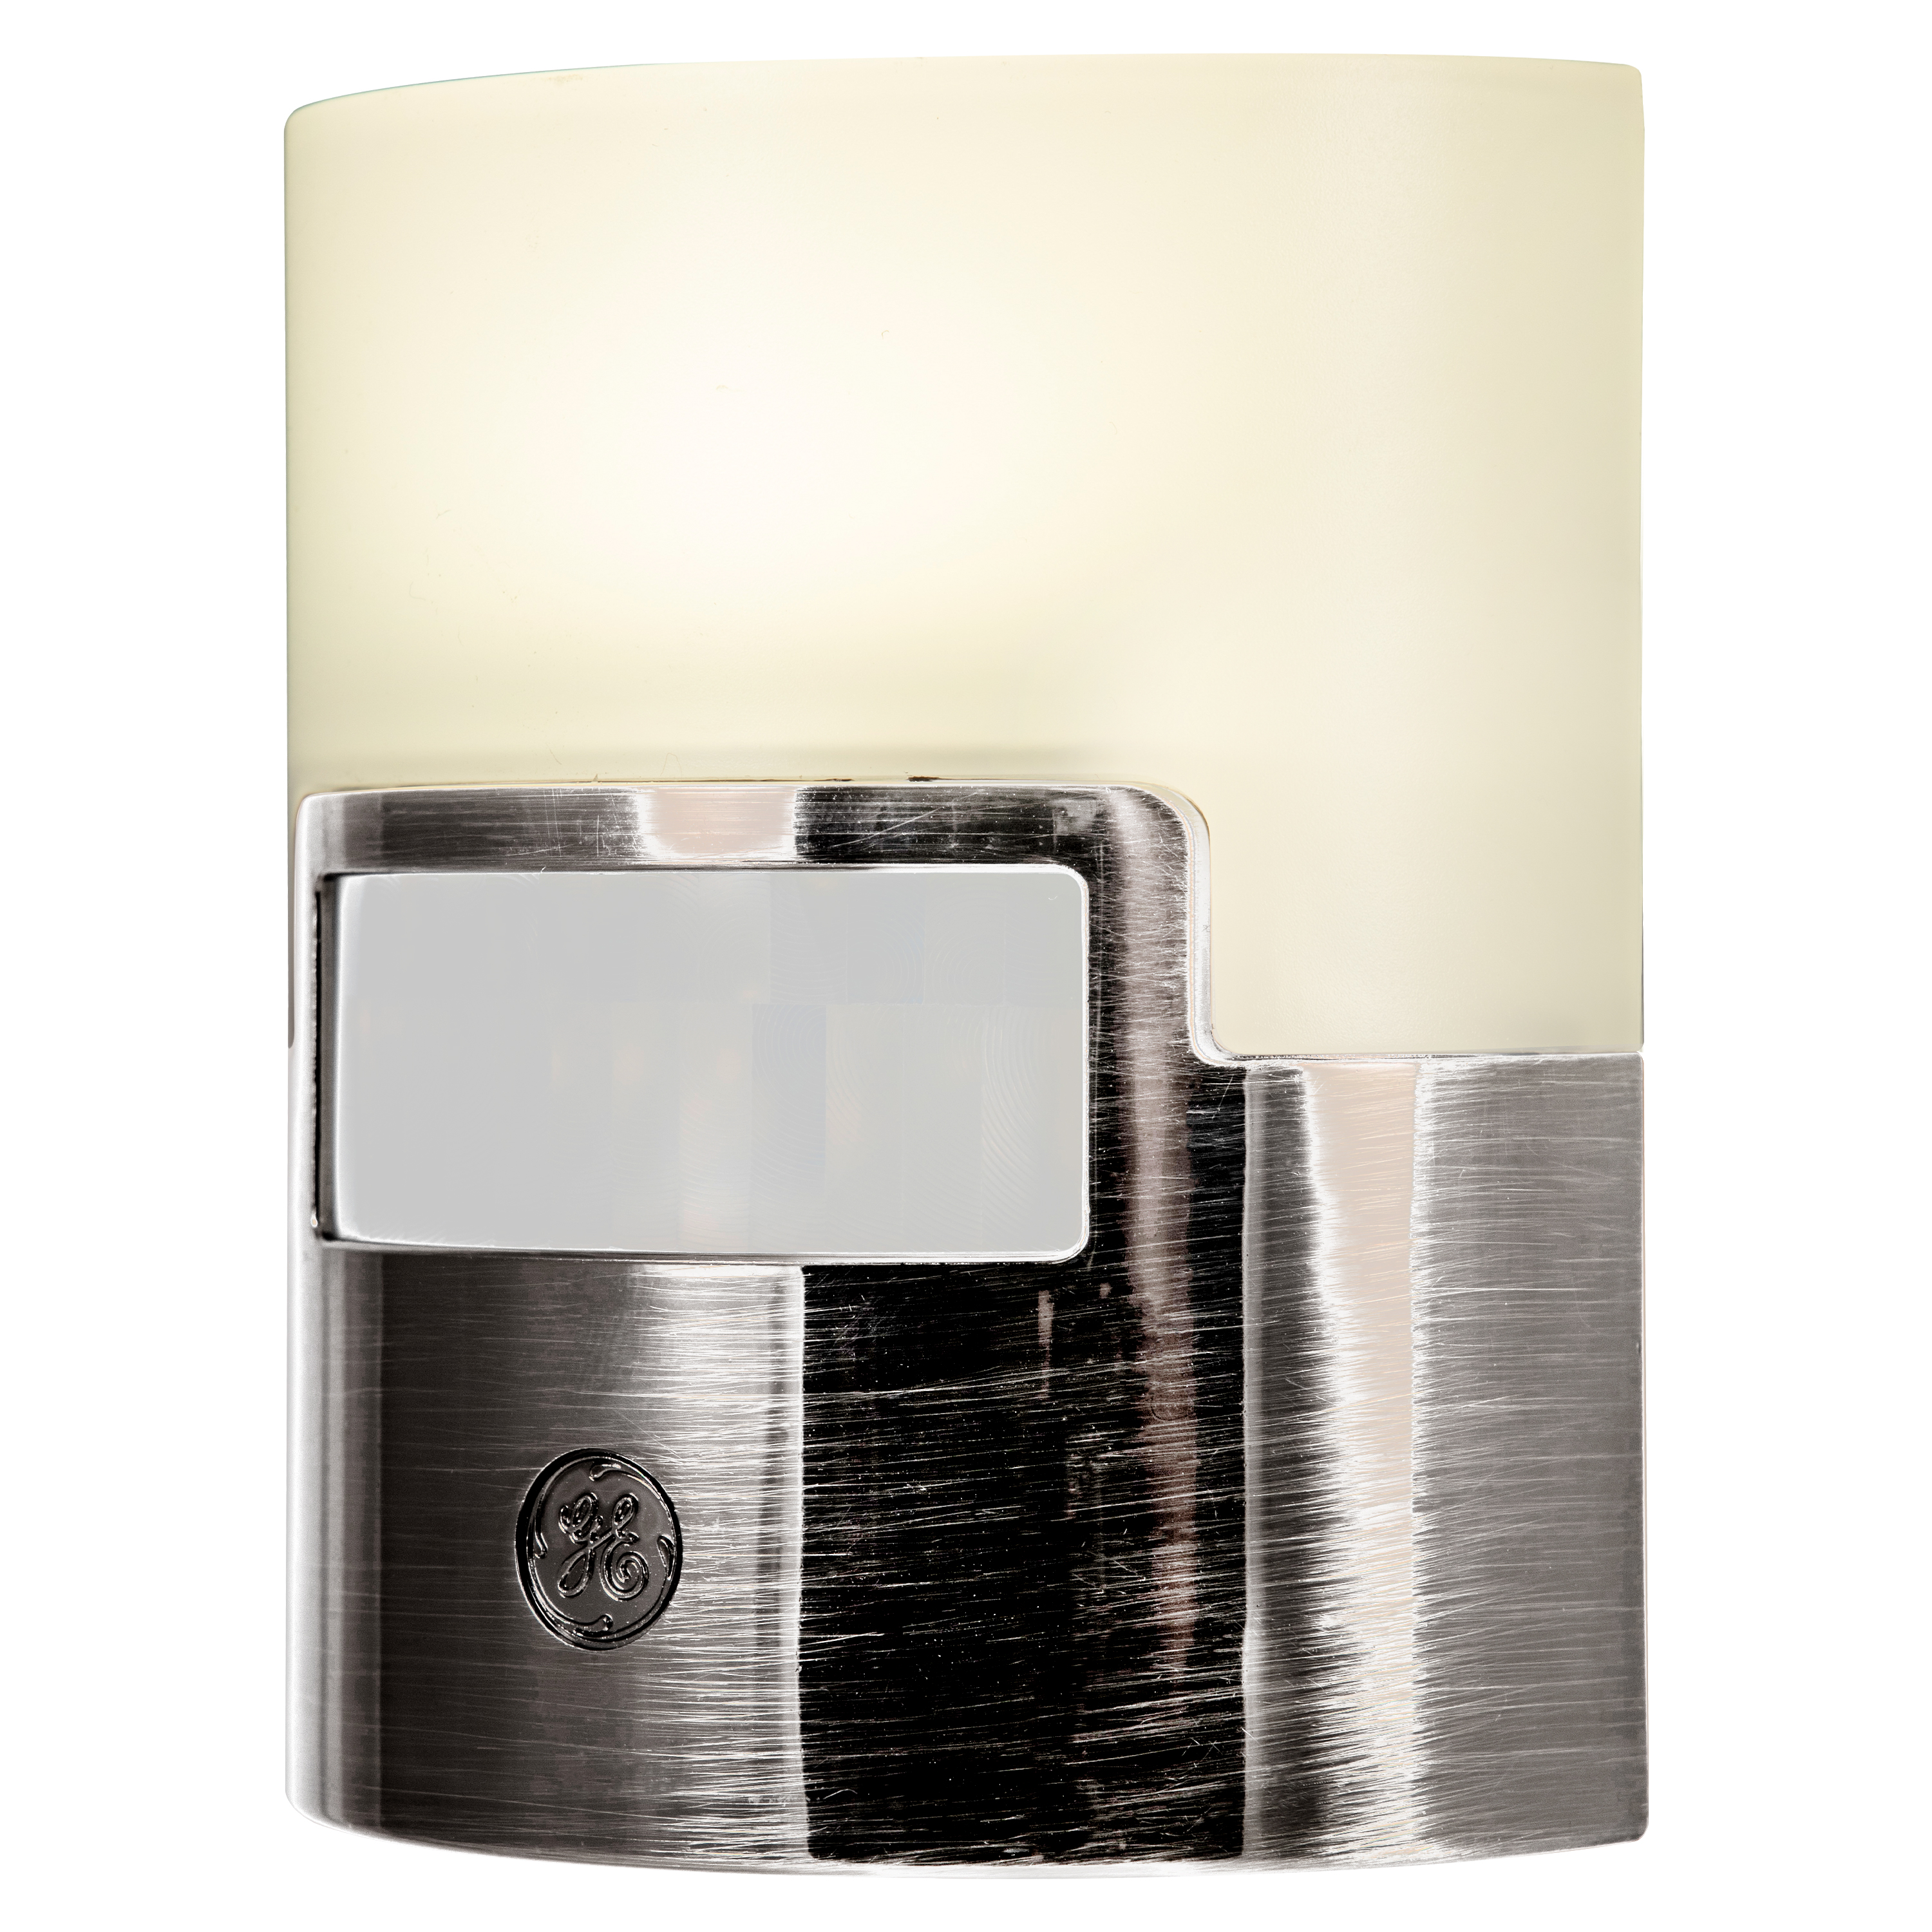 GE UltraBrite Motion-Activated LED Plug-In Night Light, 40 Lumens, Brushed Nickel, 30815